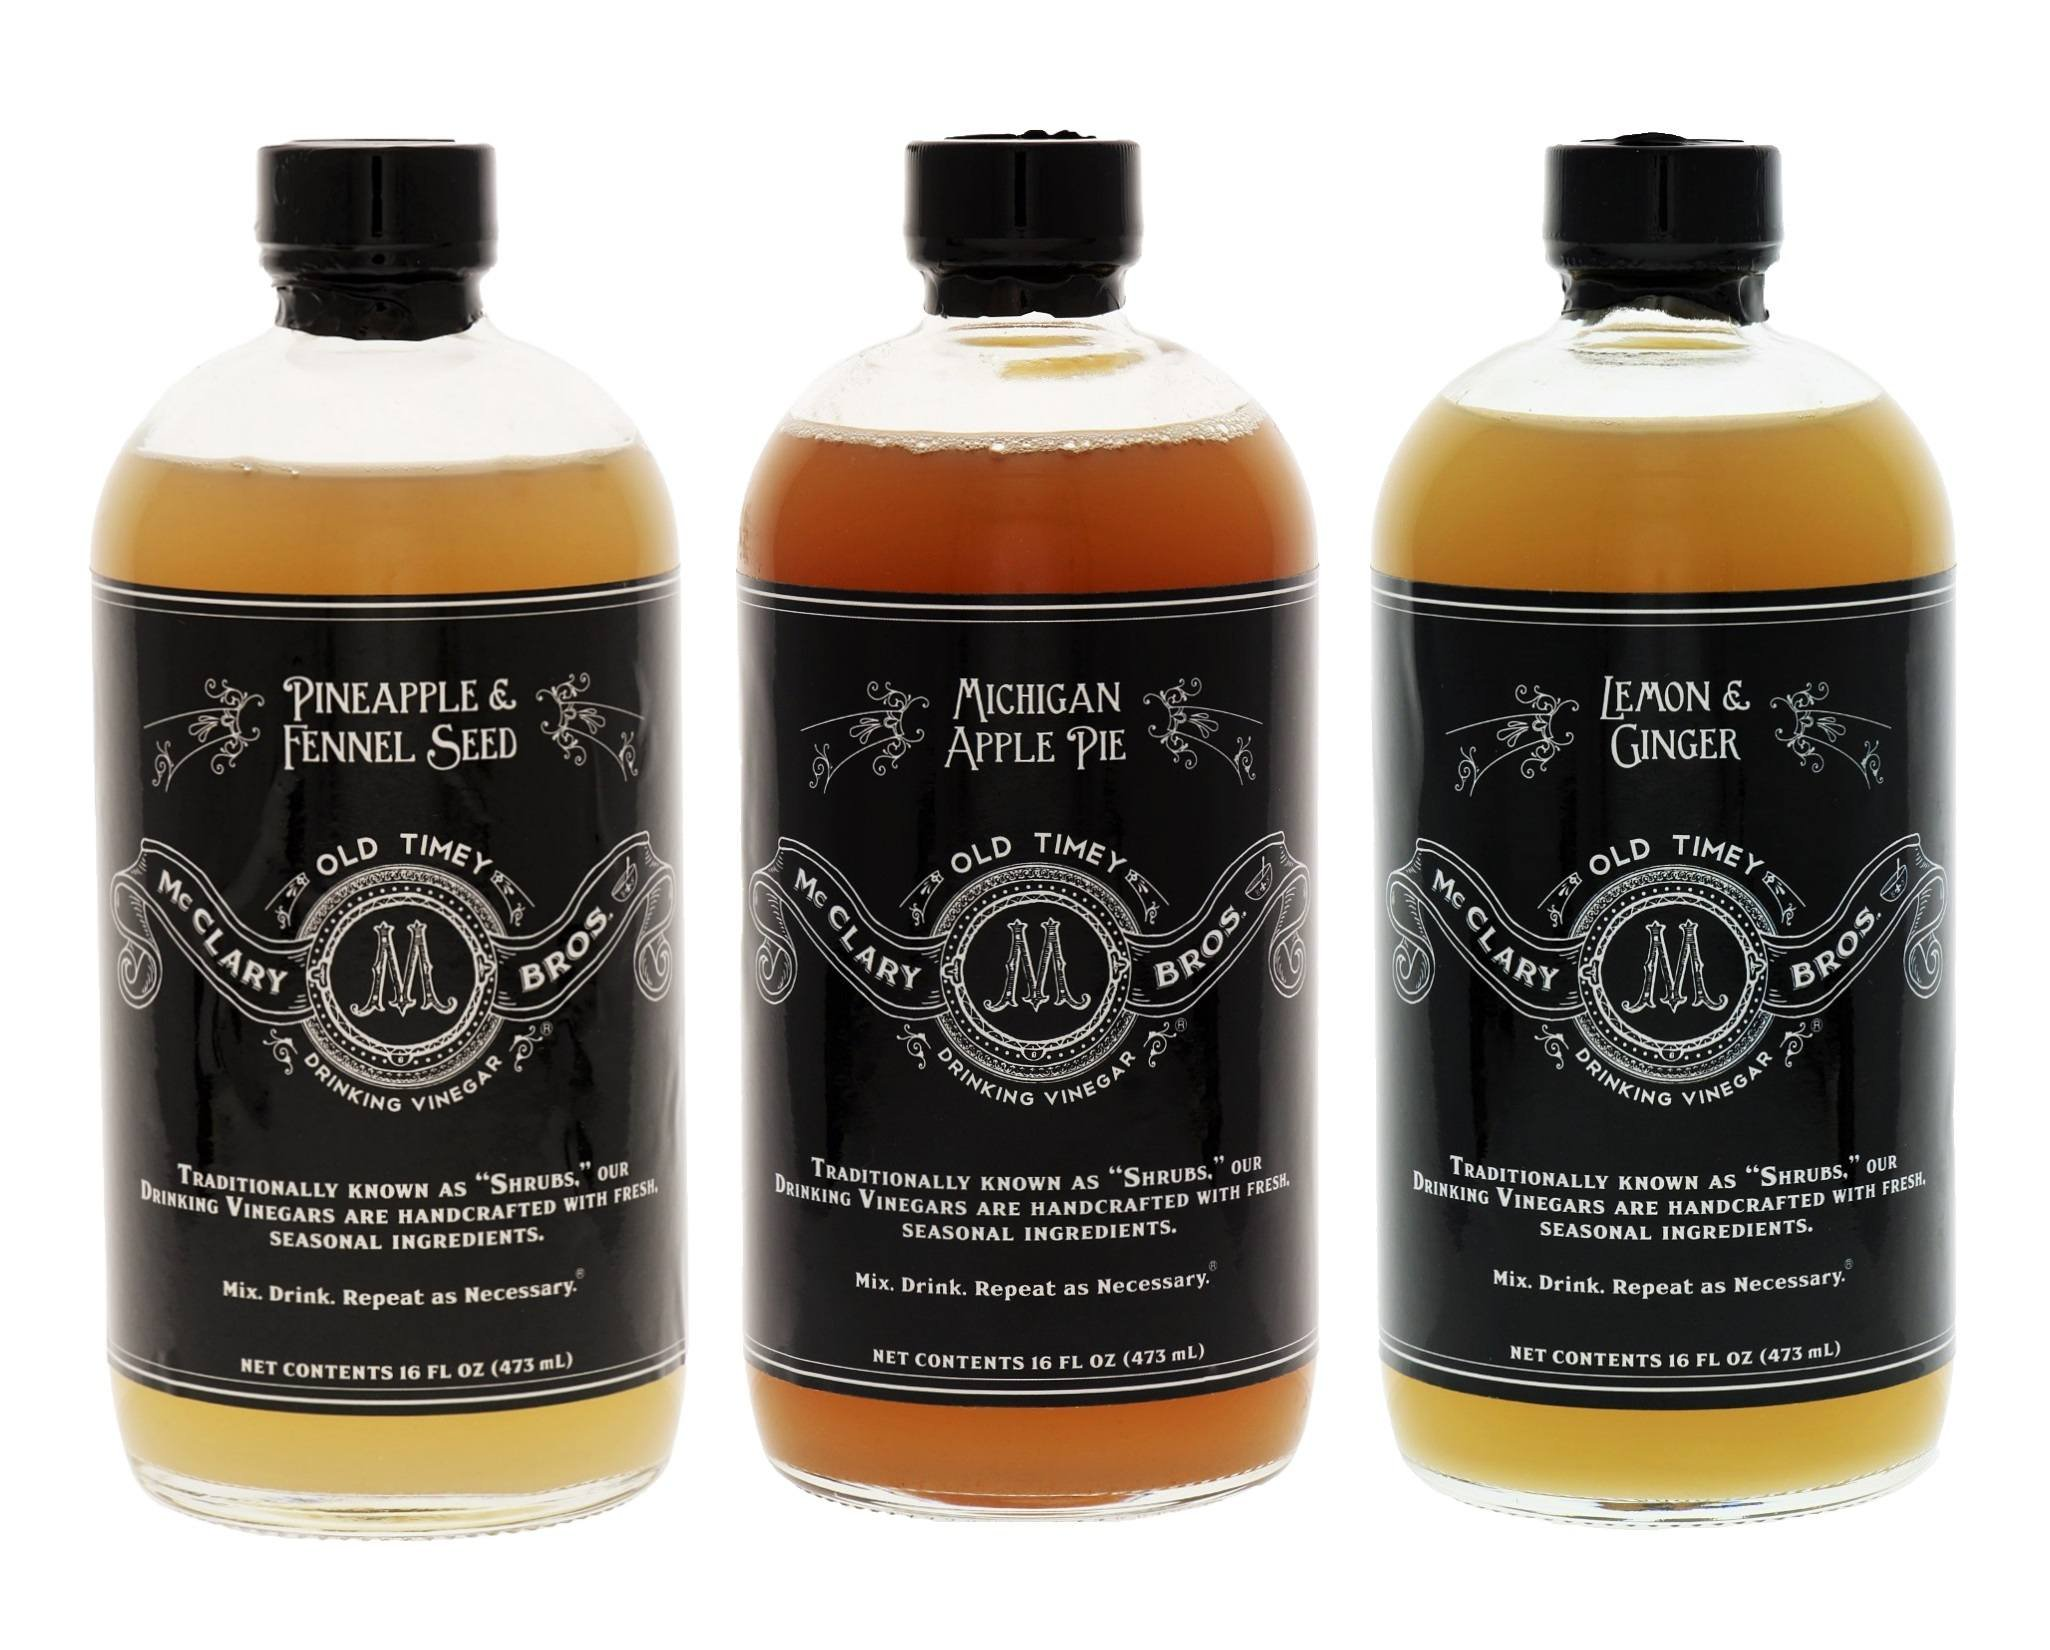 McClary Bros- Pineapple & Fennel Seed, Michigan Apple Pie, Lemon & Ginger Drinking Vinegars- 3 Bottle Craft Mixer Collection